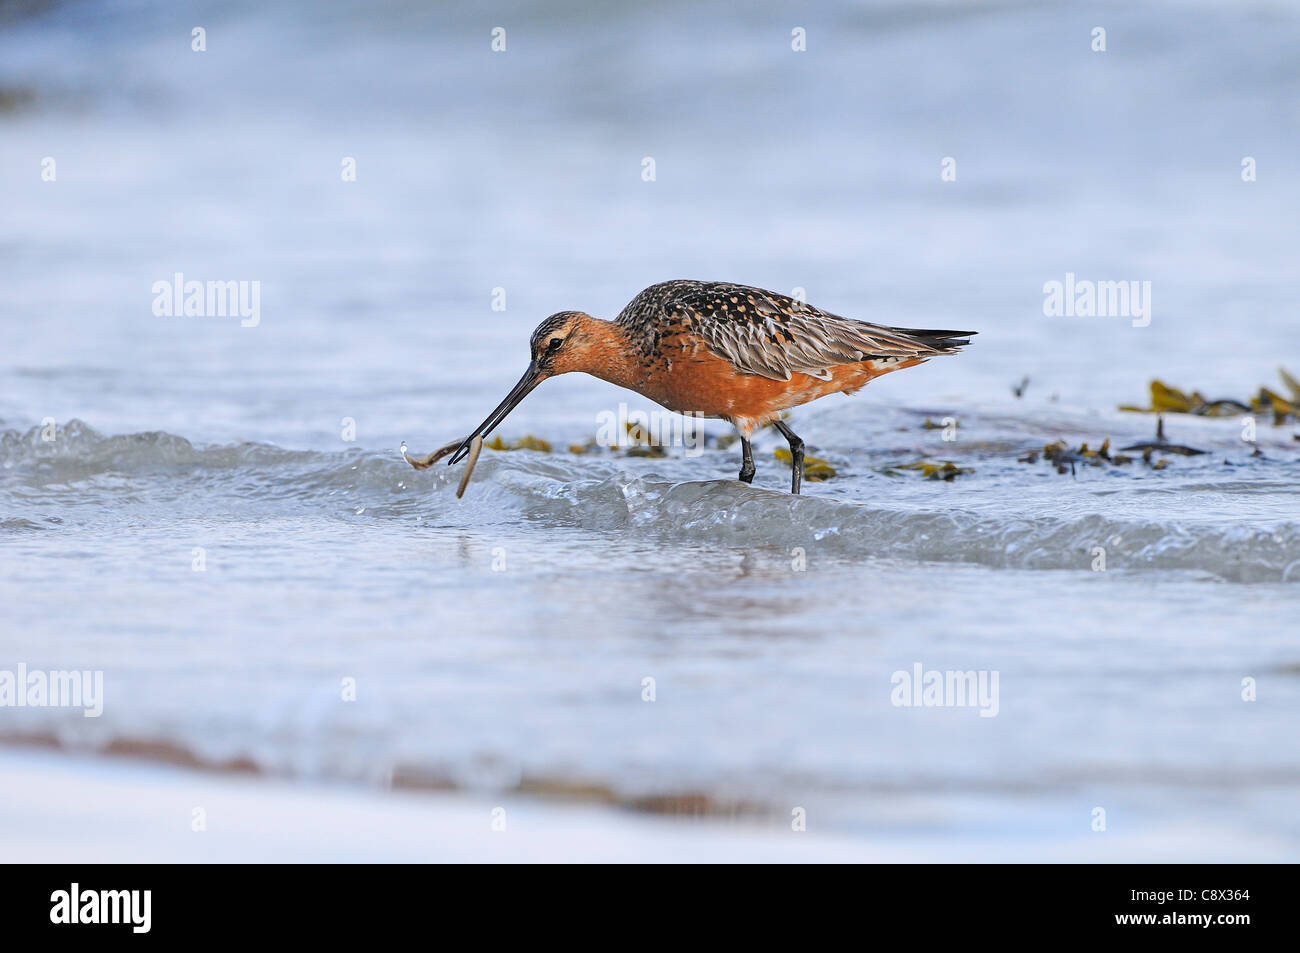 Bar-tailed Godwit (Limosa lapponica) male in breeding plumage, catching lugworm in surf, Varanger, Norway - Stock Image